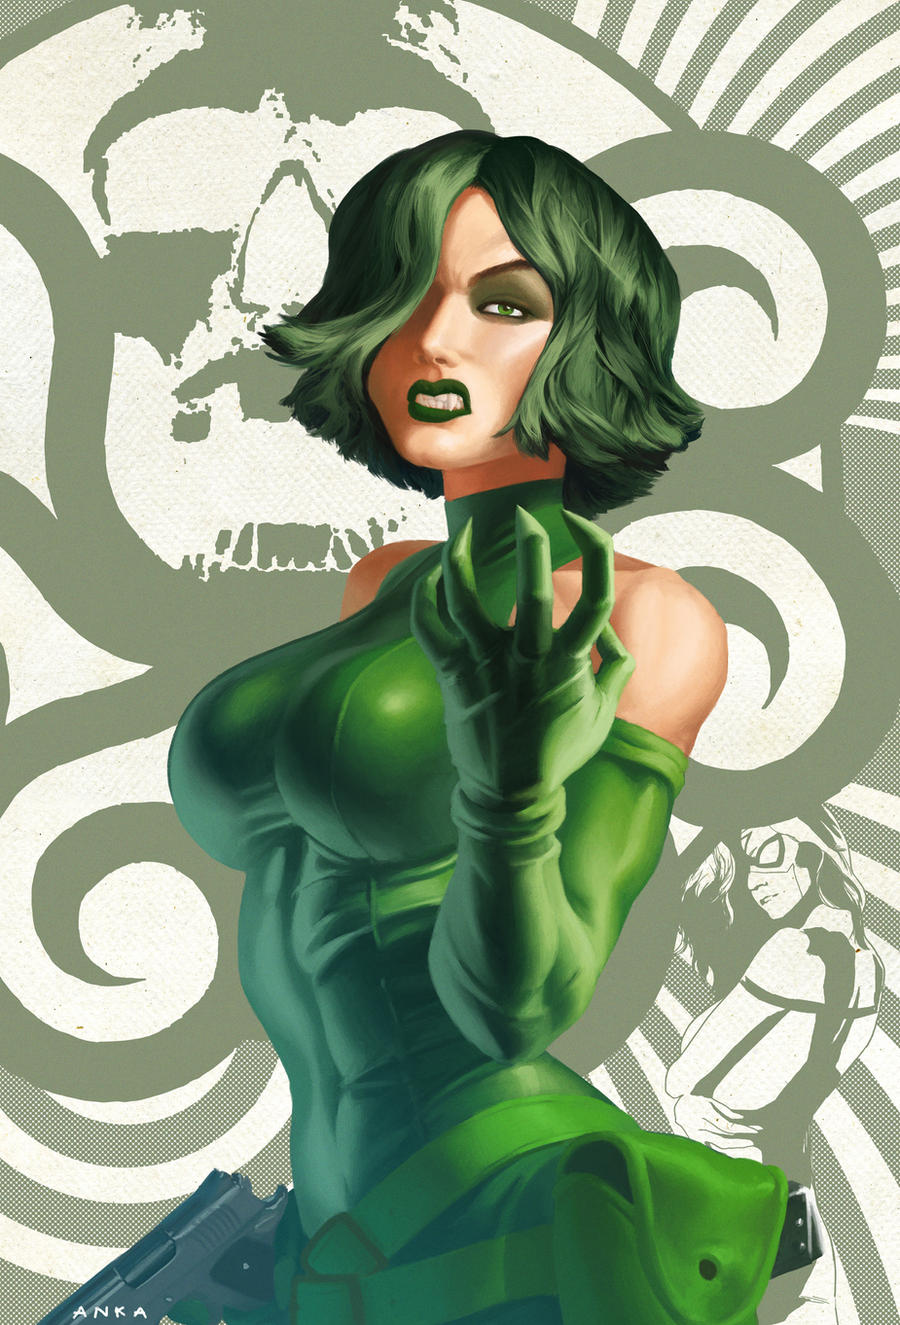 SSC - madam hydra by anklesnsocks